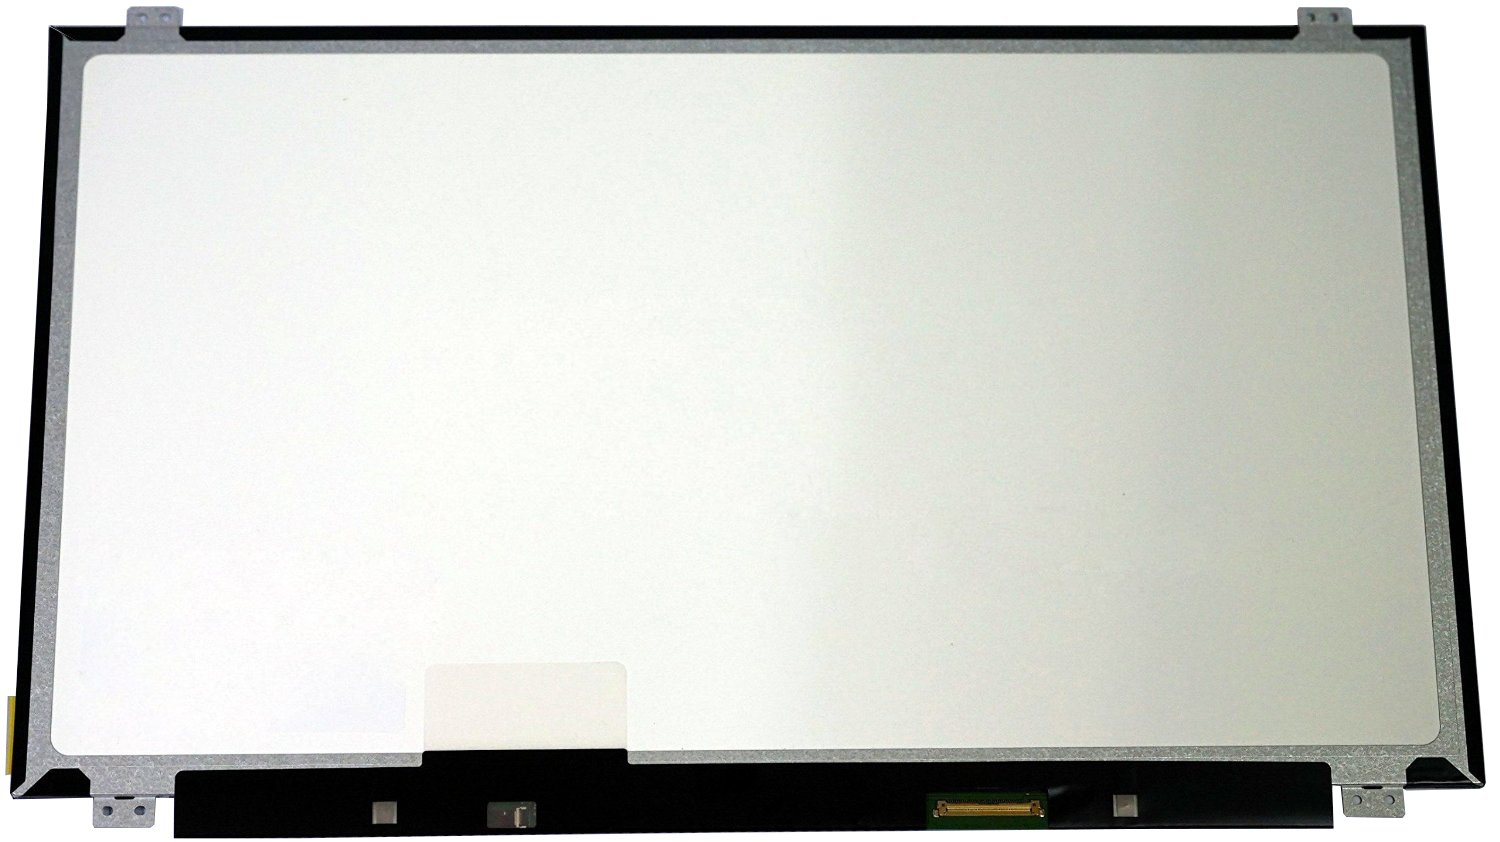 QuYing Laptop LCD Screen for Acer ASPIRE V3-574G V5-591G V5-531P V7-581P V5-572 V5-572G E5-522G SERIES (15.6 1366x768 30pin) new for acer aspire v5 531 v5 571 v5 571g lcd lvds cable va51 50 4vm06 002 free shipping